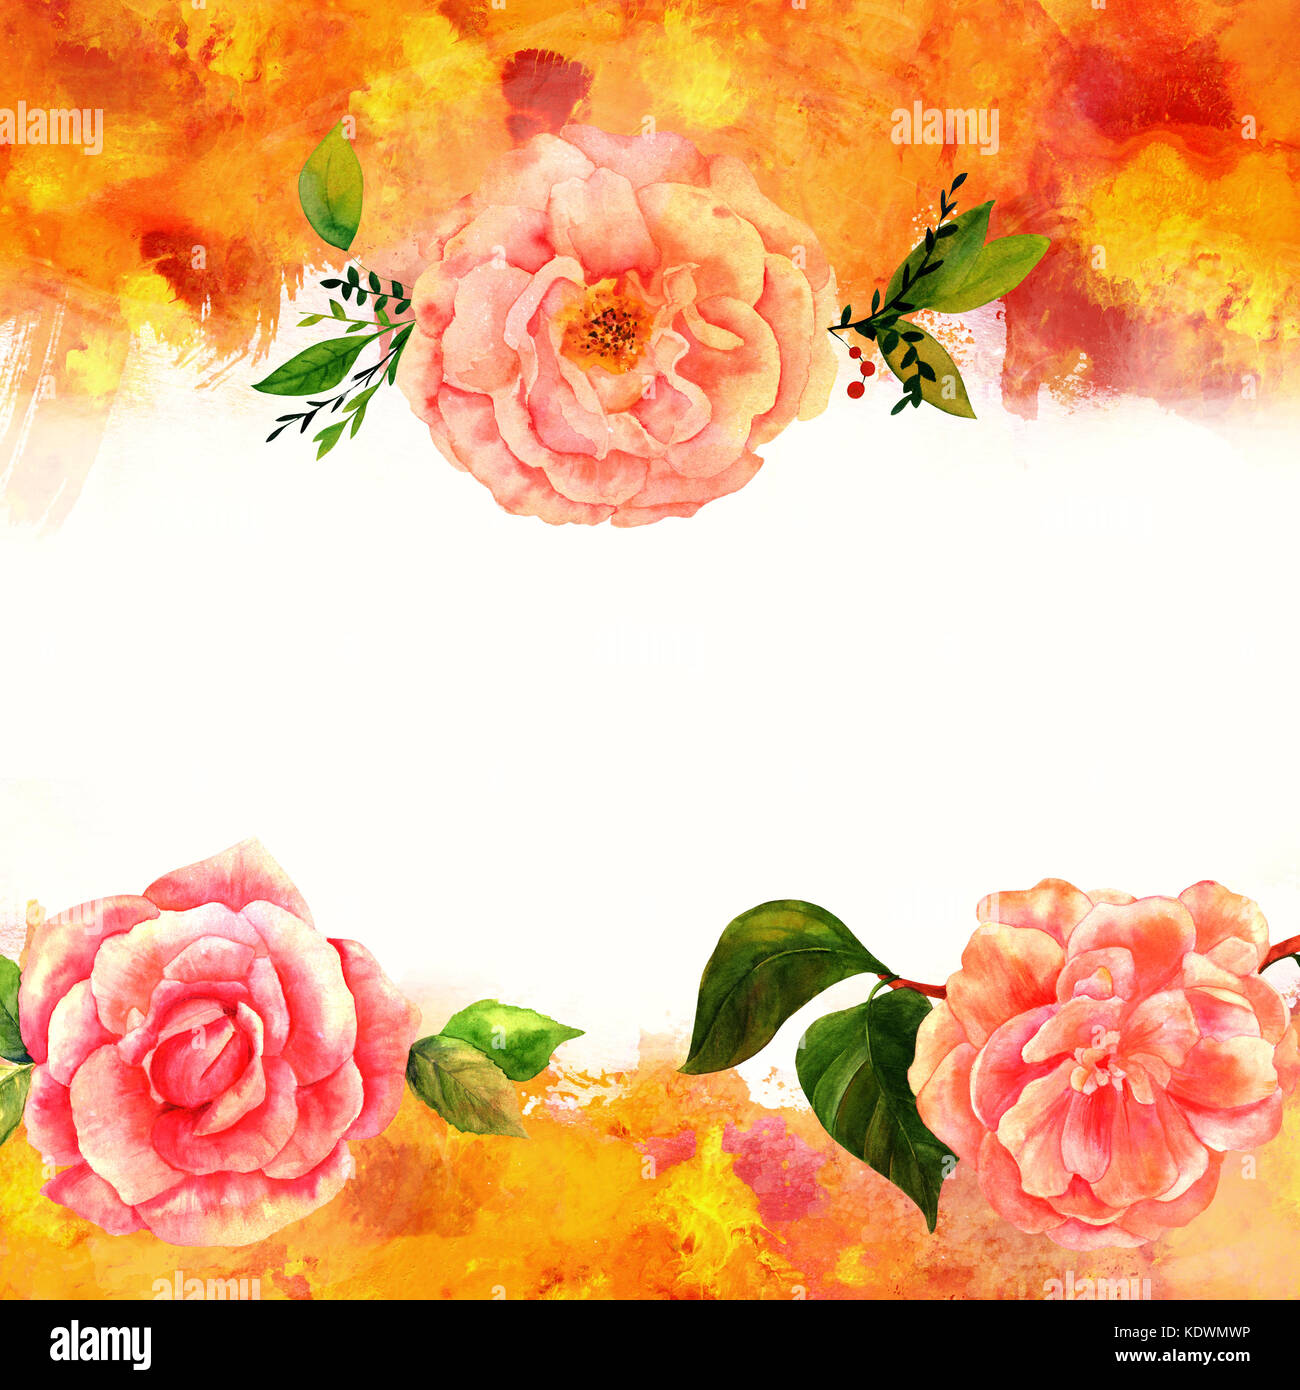 Background Texture With Vibrant Red Yellow Orange And White Painterly Brush Strokes